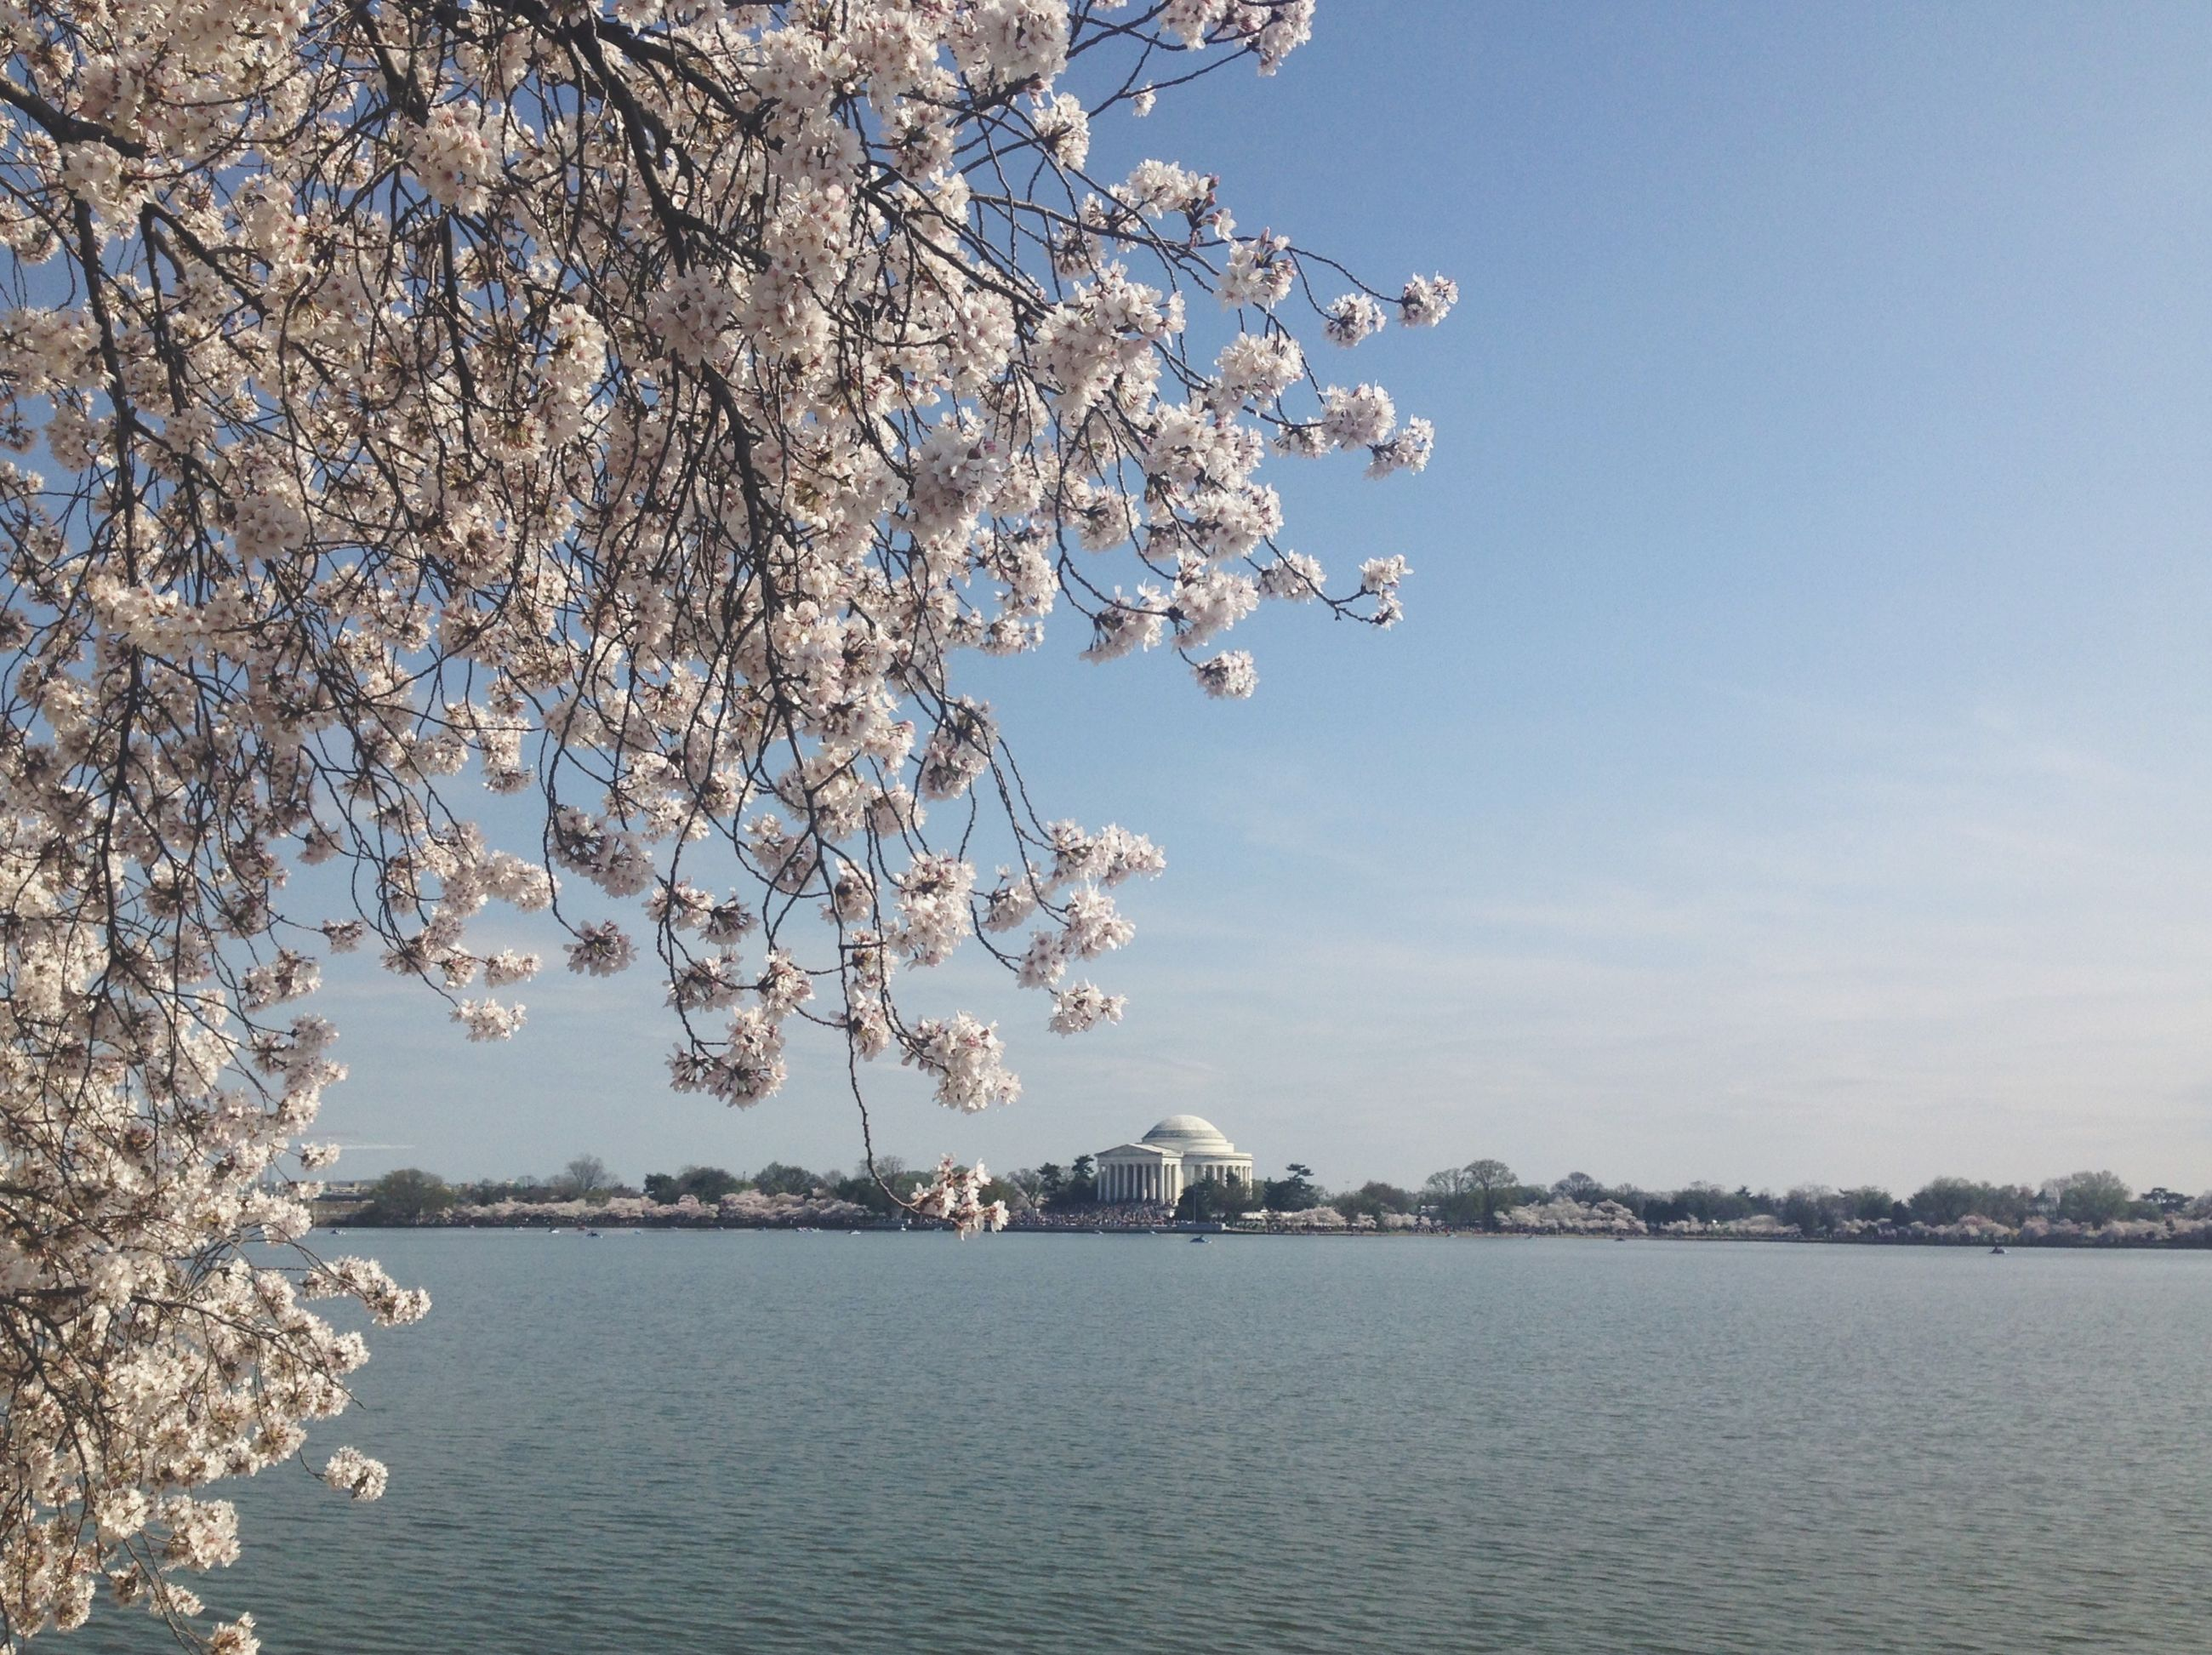 tree, water, branch, clear sky, waterfront, lake, flower, nature, beauty in nature, building exterior, built structure, growth, tranquility, architecture, sky, tranquil scene, river, scenics, blue, day